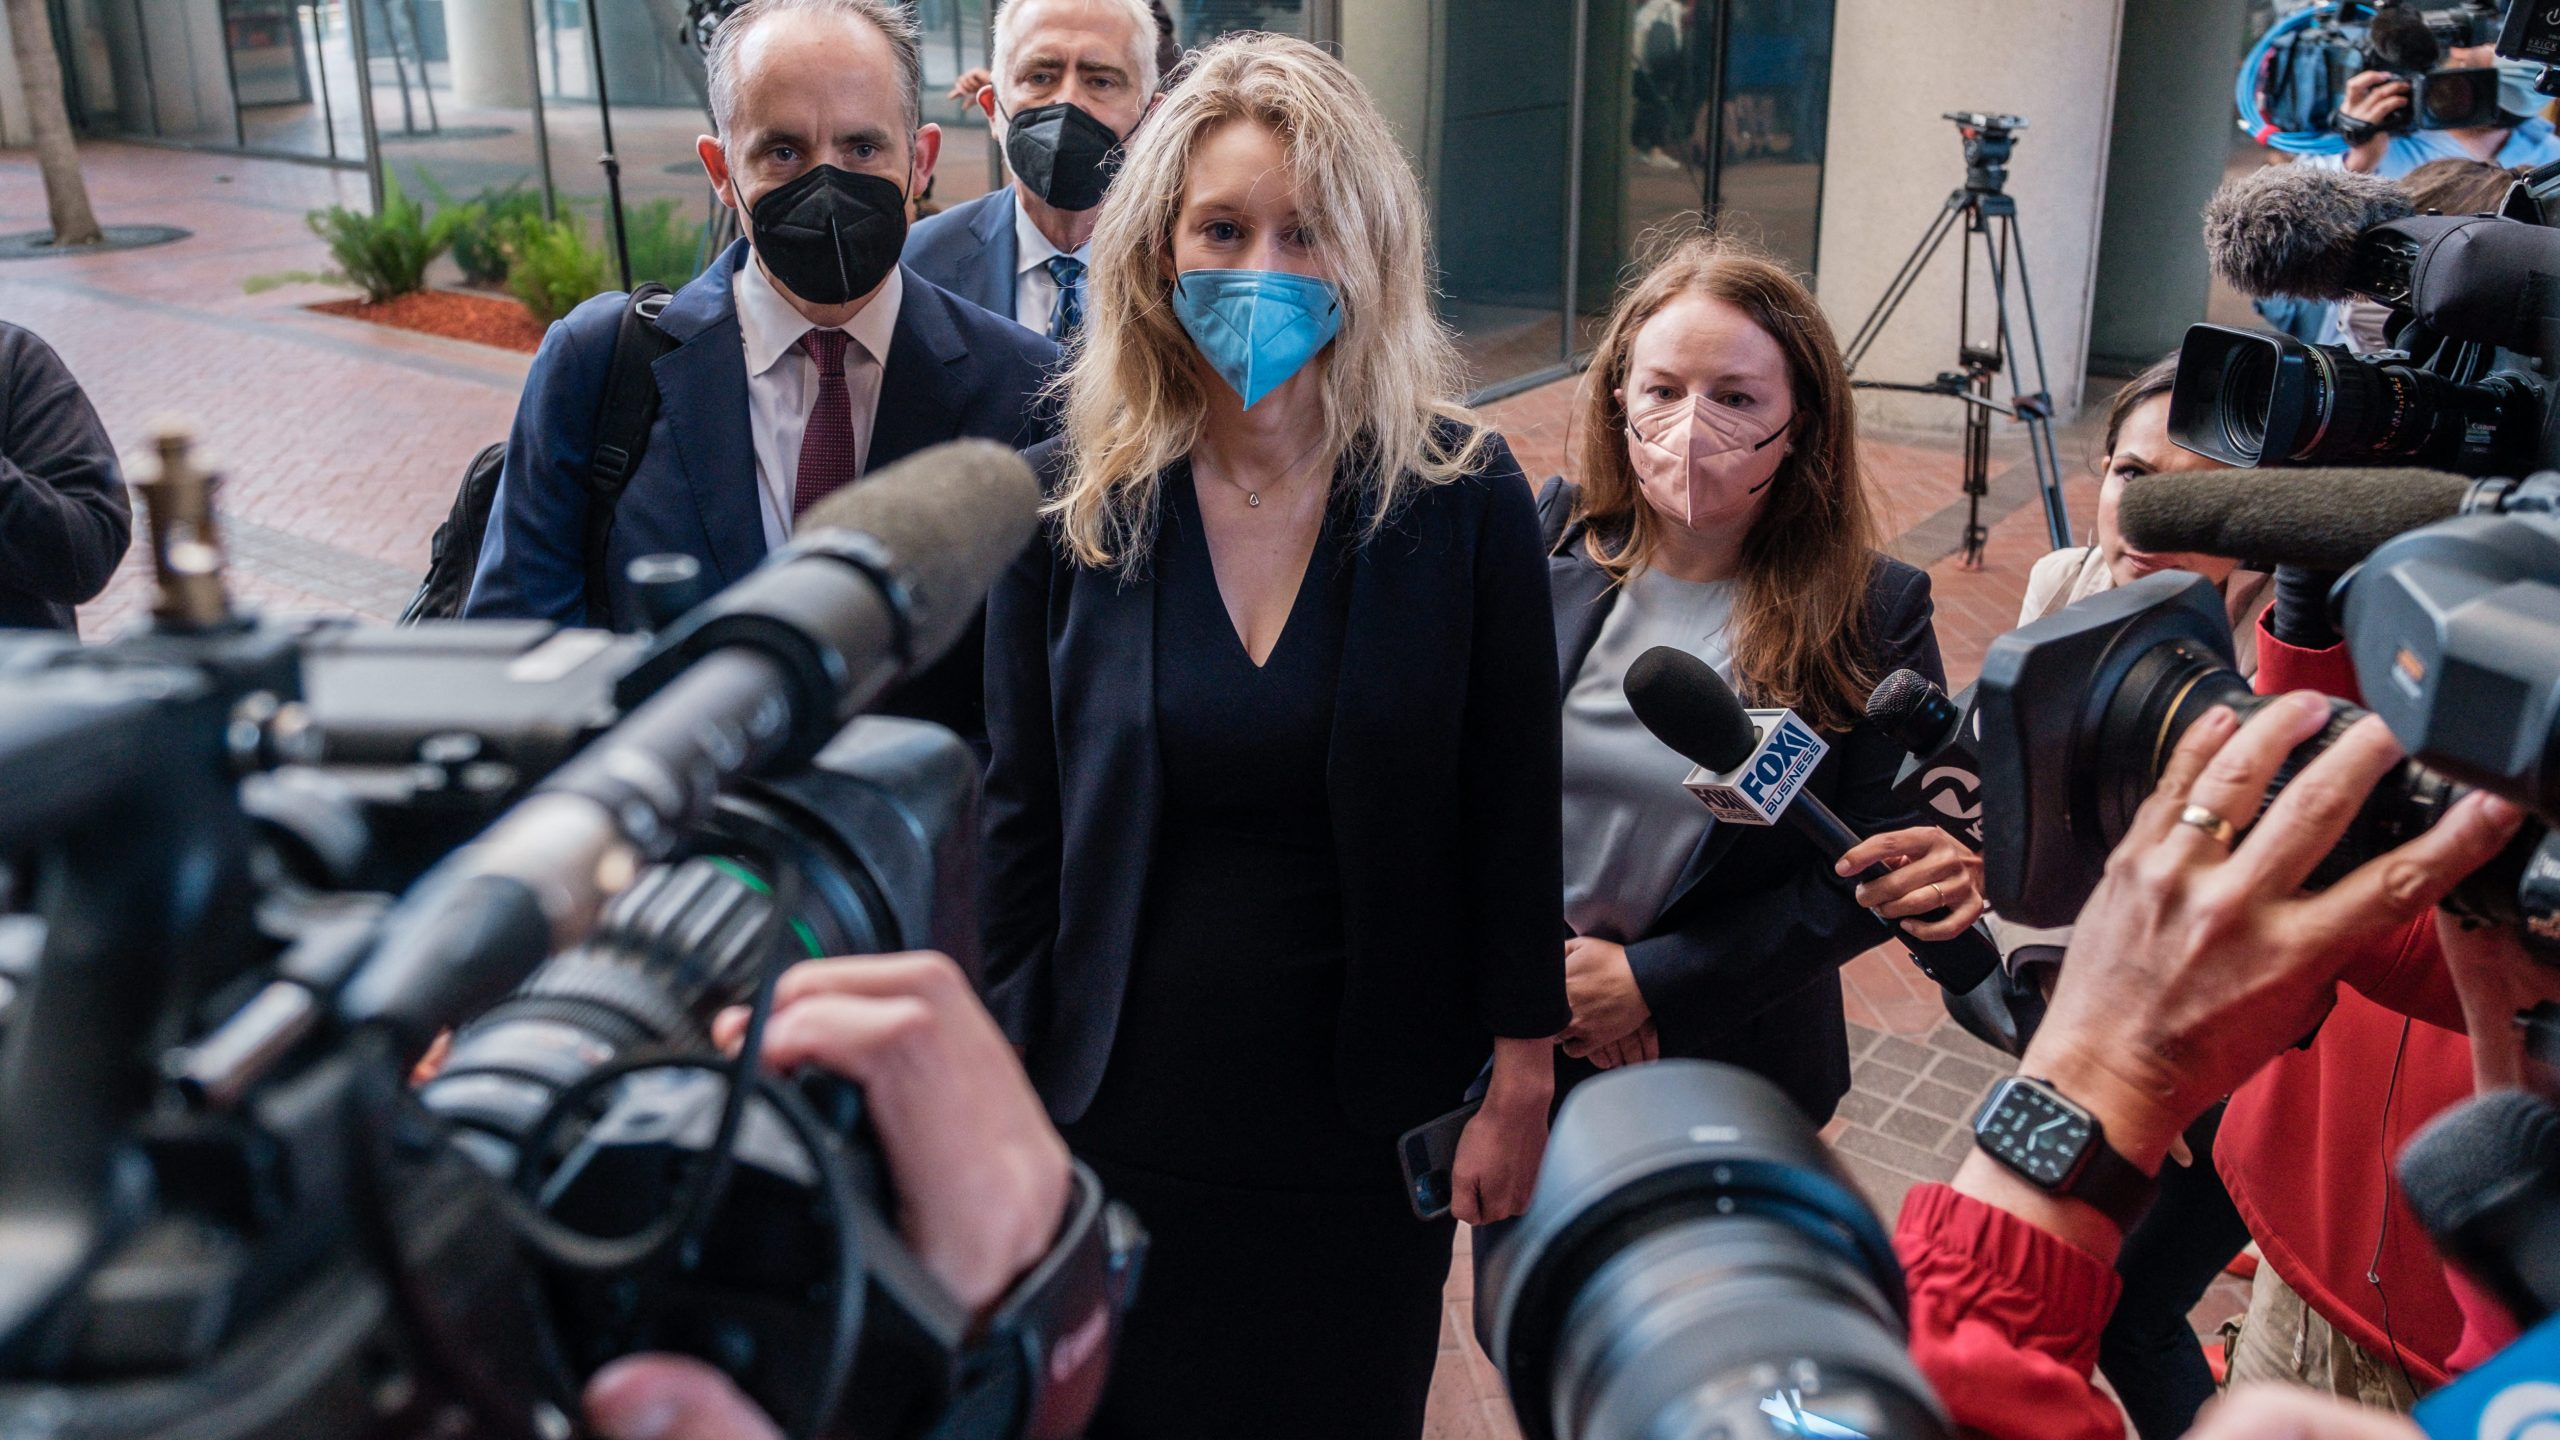 Elizabeth Holmes, the founder and former CEO of blood testing and life sciences company Theranos, arrives for the first day of jury selection in her fraud trial, outside Federal Court in San Jose, California, on Aug. 31, 2021. (NICK OTTO/AFP via Getty Images)